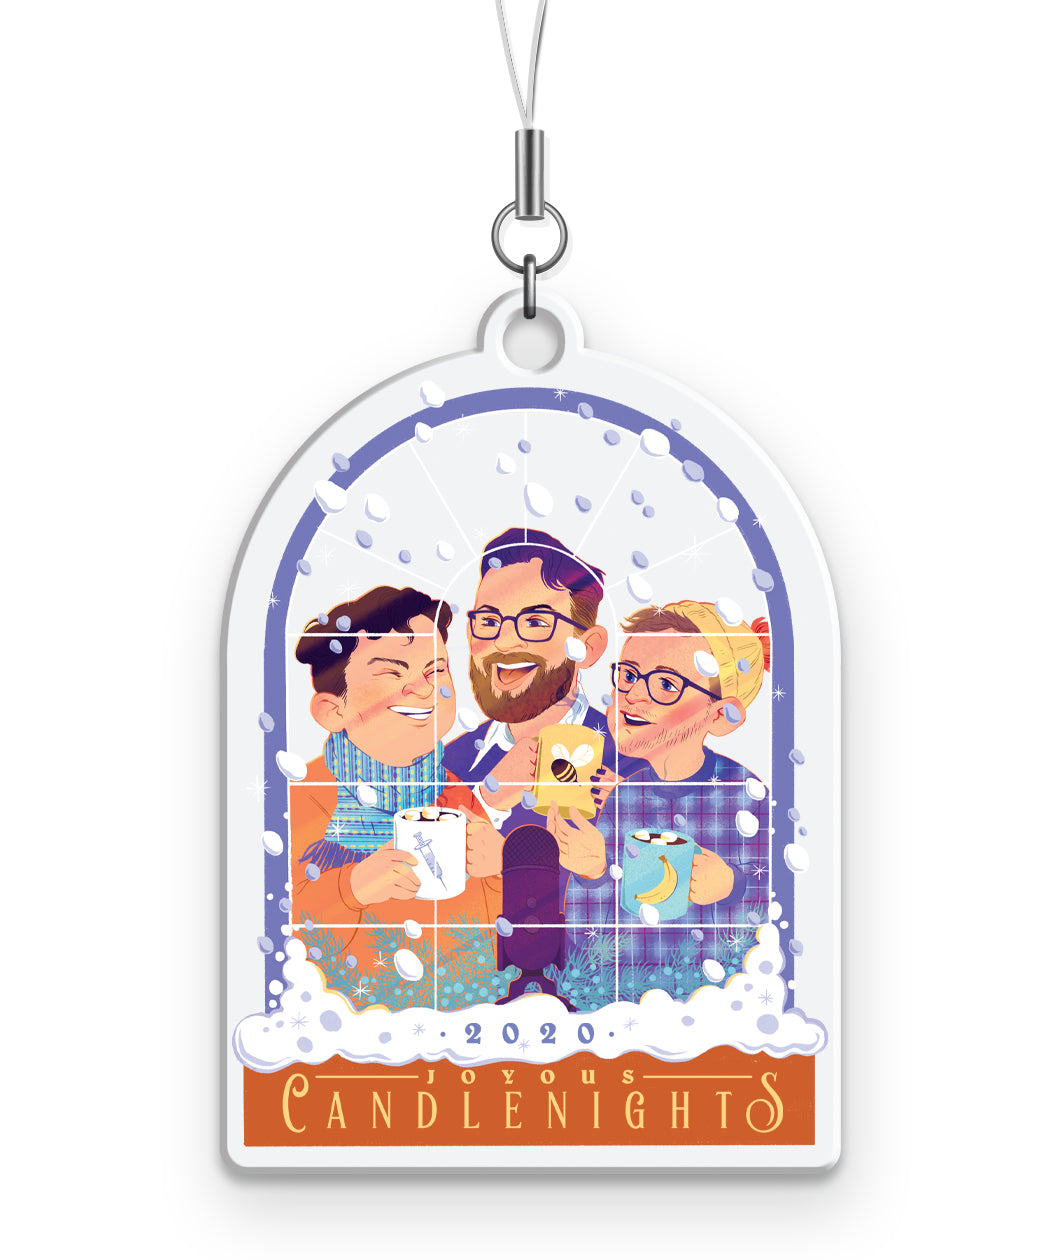 2020 Candlenights Ornament